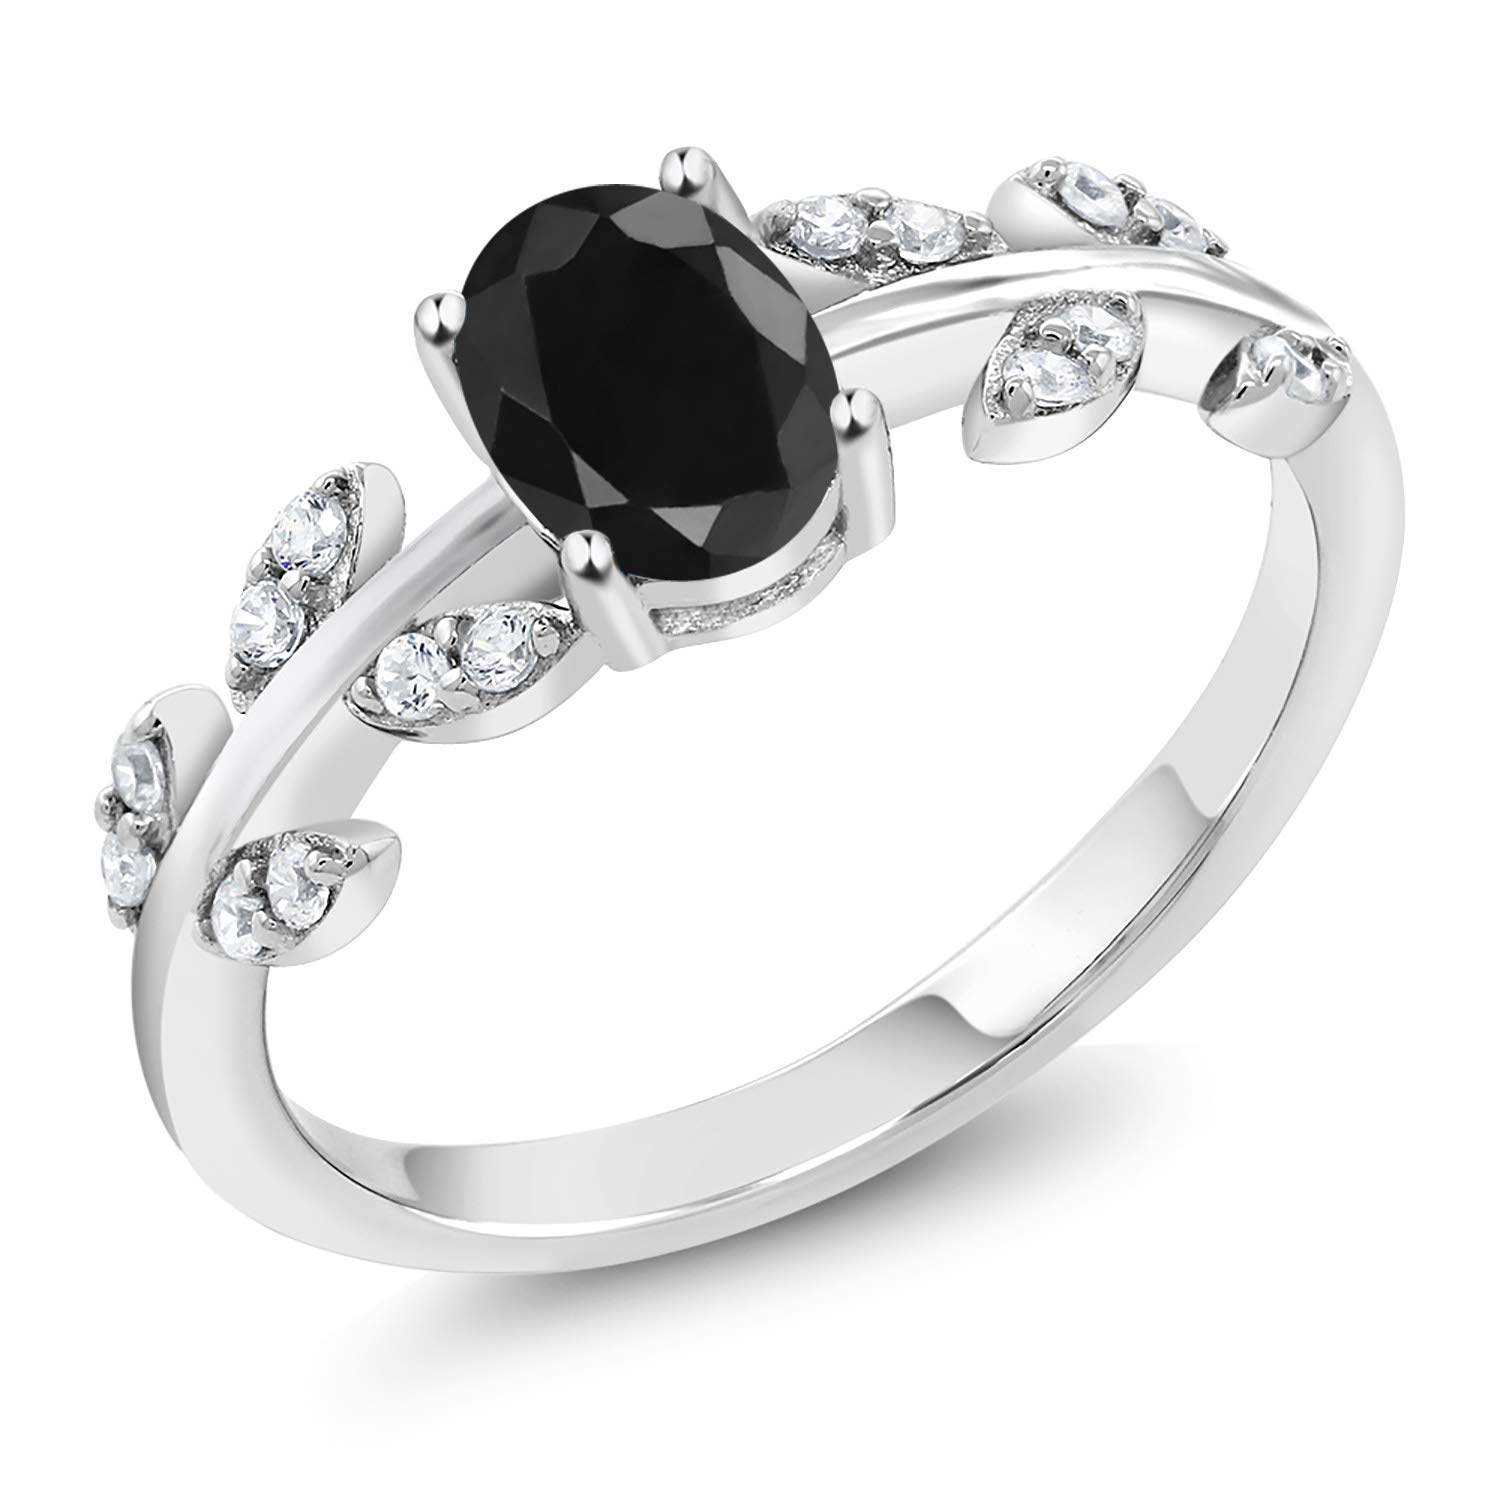 Gem Stone King 1.28 Ct Oval Black Sapphire 925 Sterling Silver Olive Vine Branch Engagement Ring (Available 5,6,7,8,9)